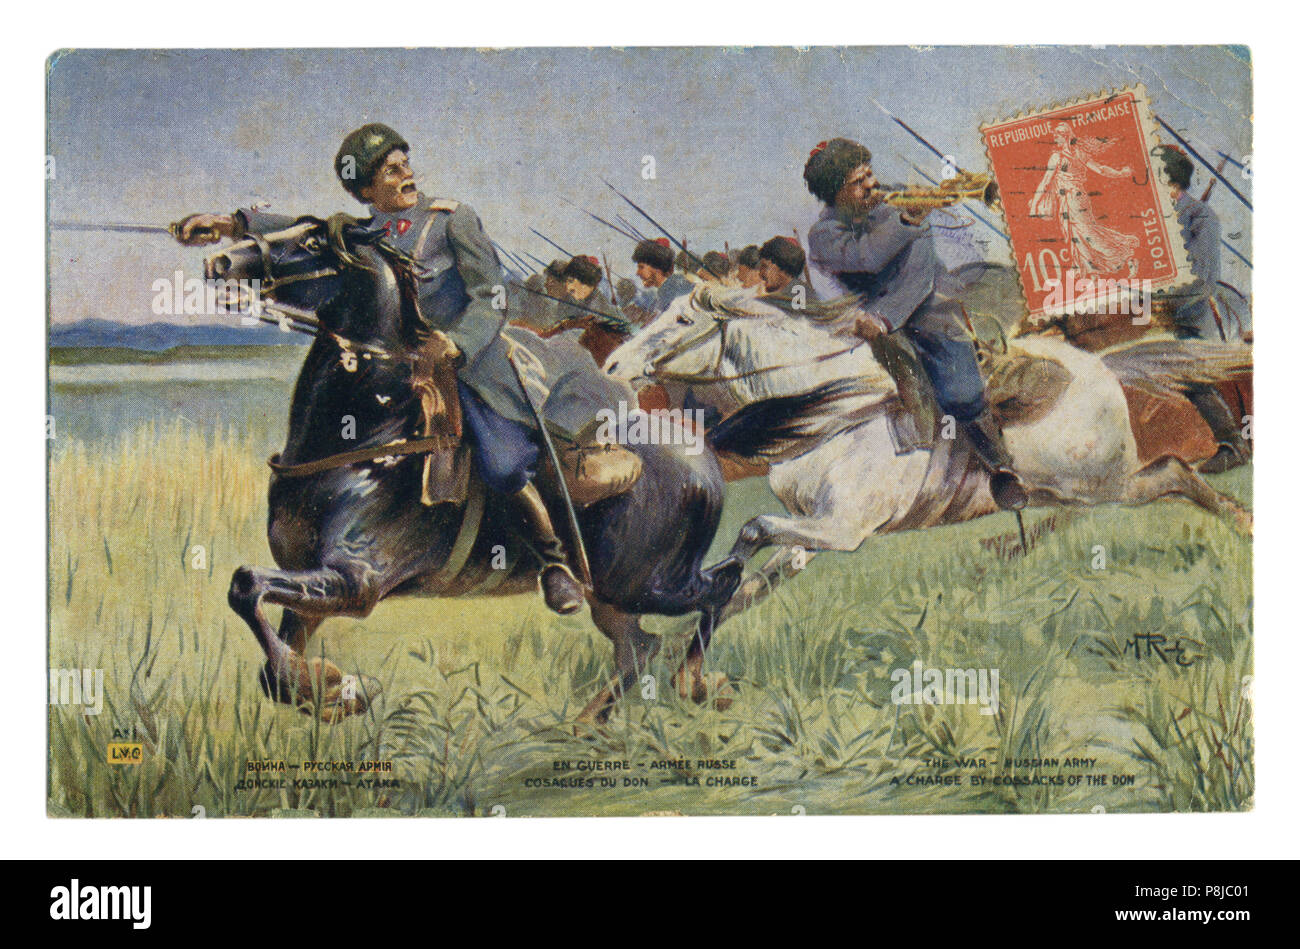 French historical postcard: Don Cossacks in the attack. A squadron of the Imperial Russian cavalry with drawn swords. world war one 1914-1918. Russia - Stock Image